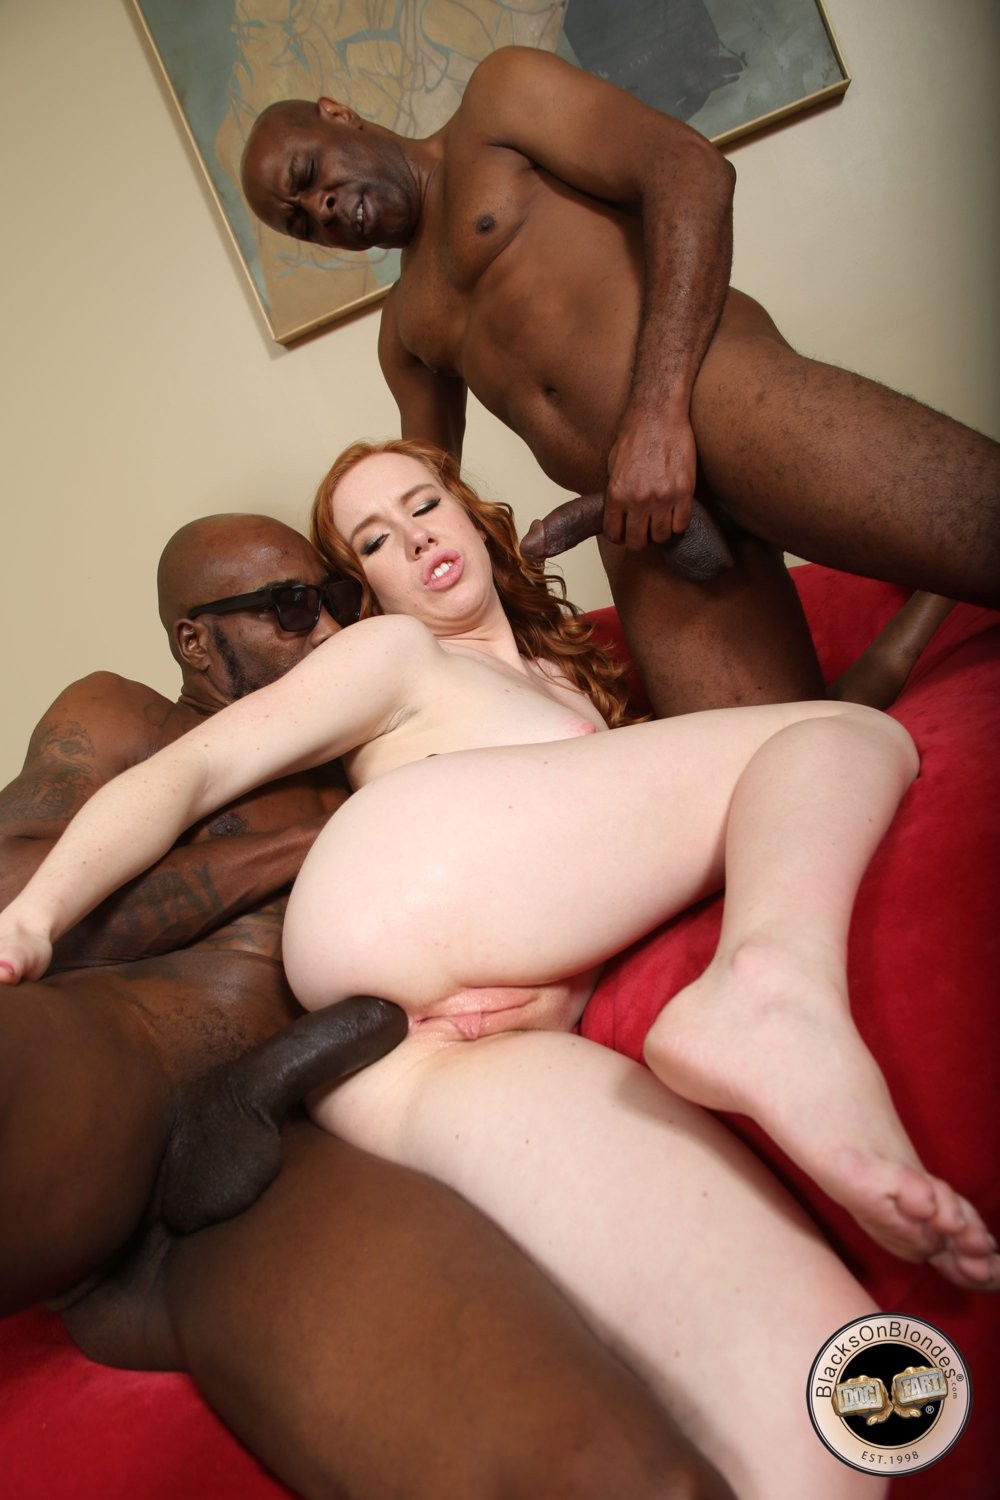 old-woman-interracial-gie-sex-very